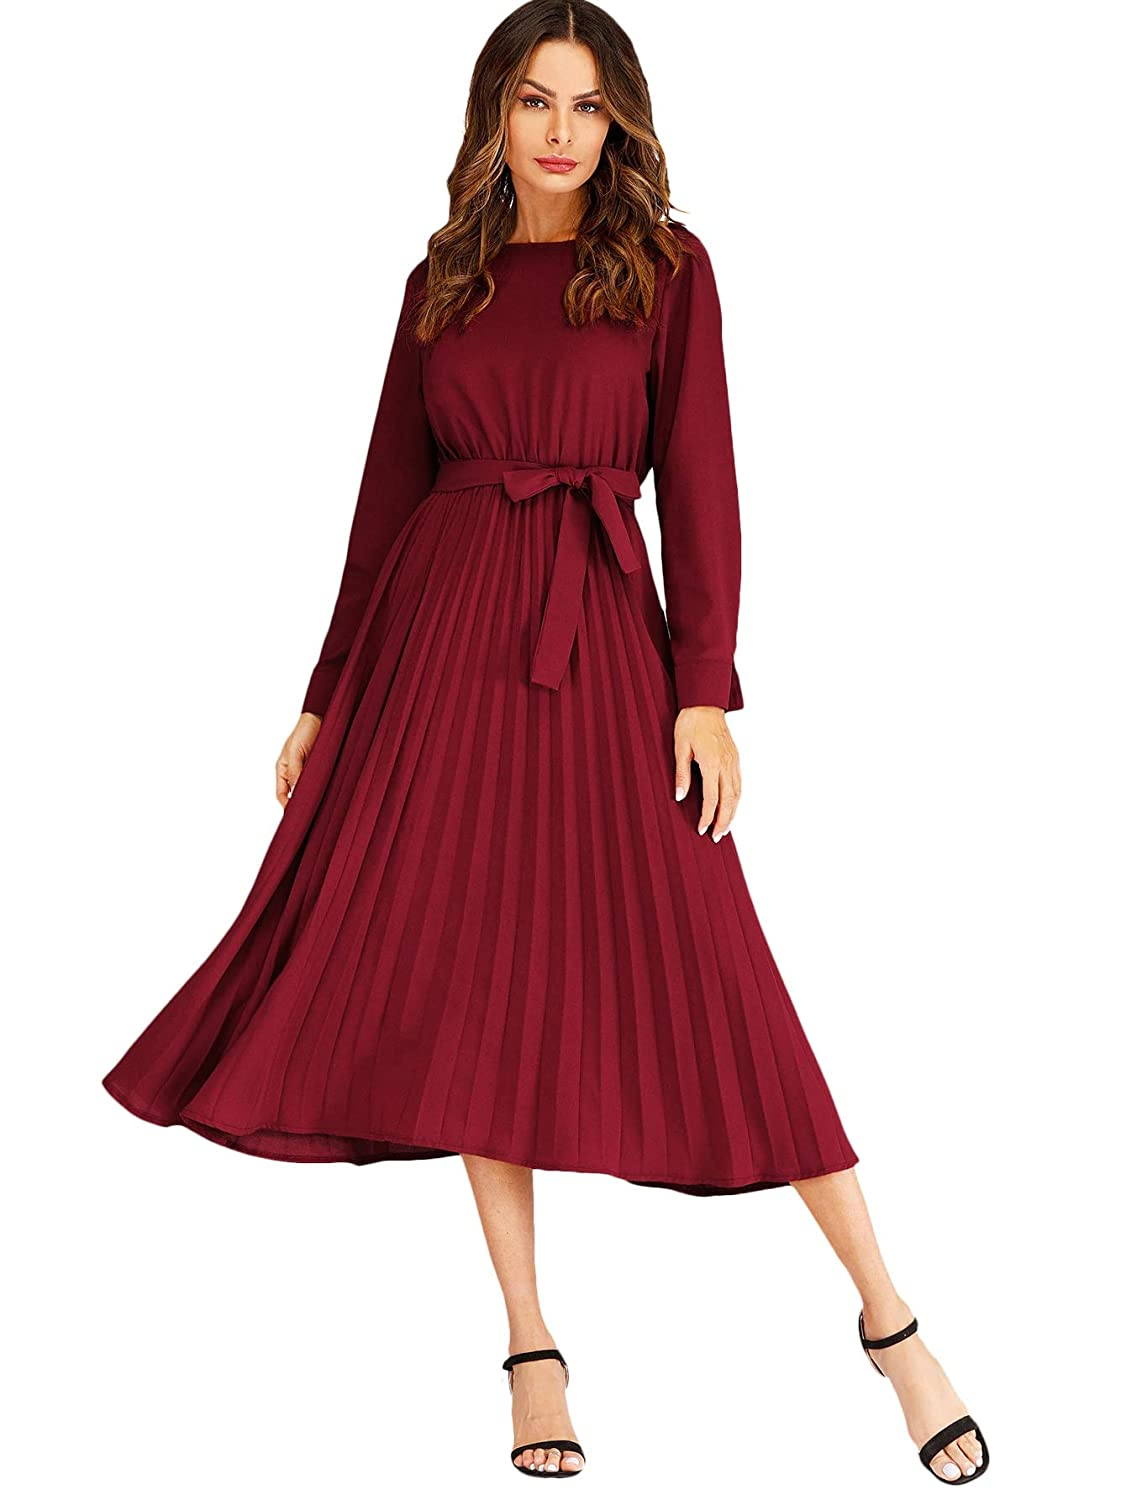 1930s Day Dresses, Afternoon Dresses History Verdusa Womens Round Neck Long Sleeve Belted Pleated Fit and Flare Dress $28.99 AT vintagedancer.com